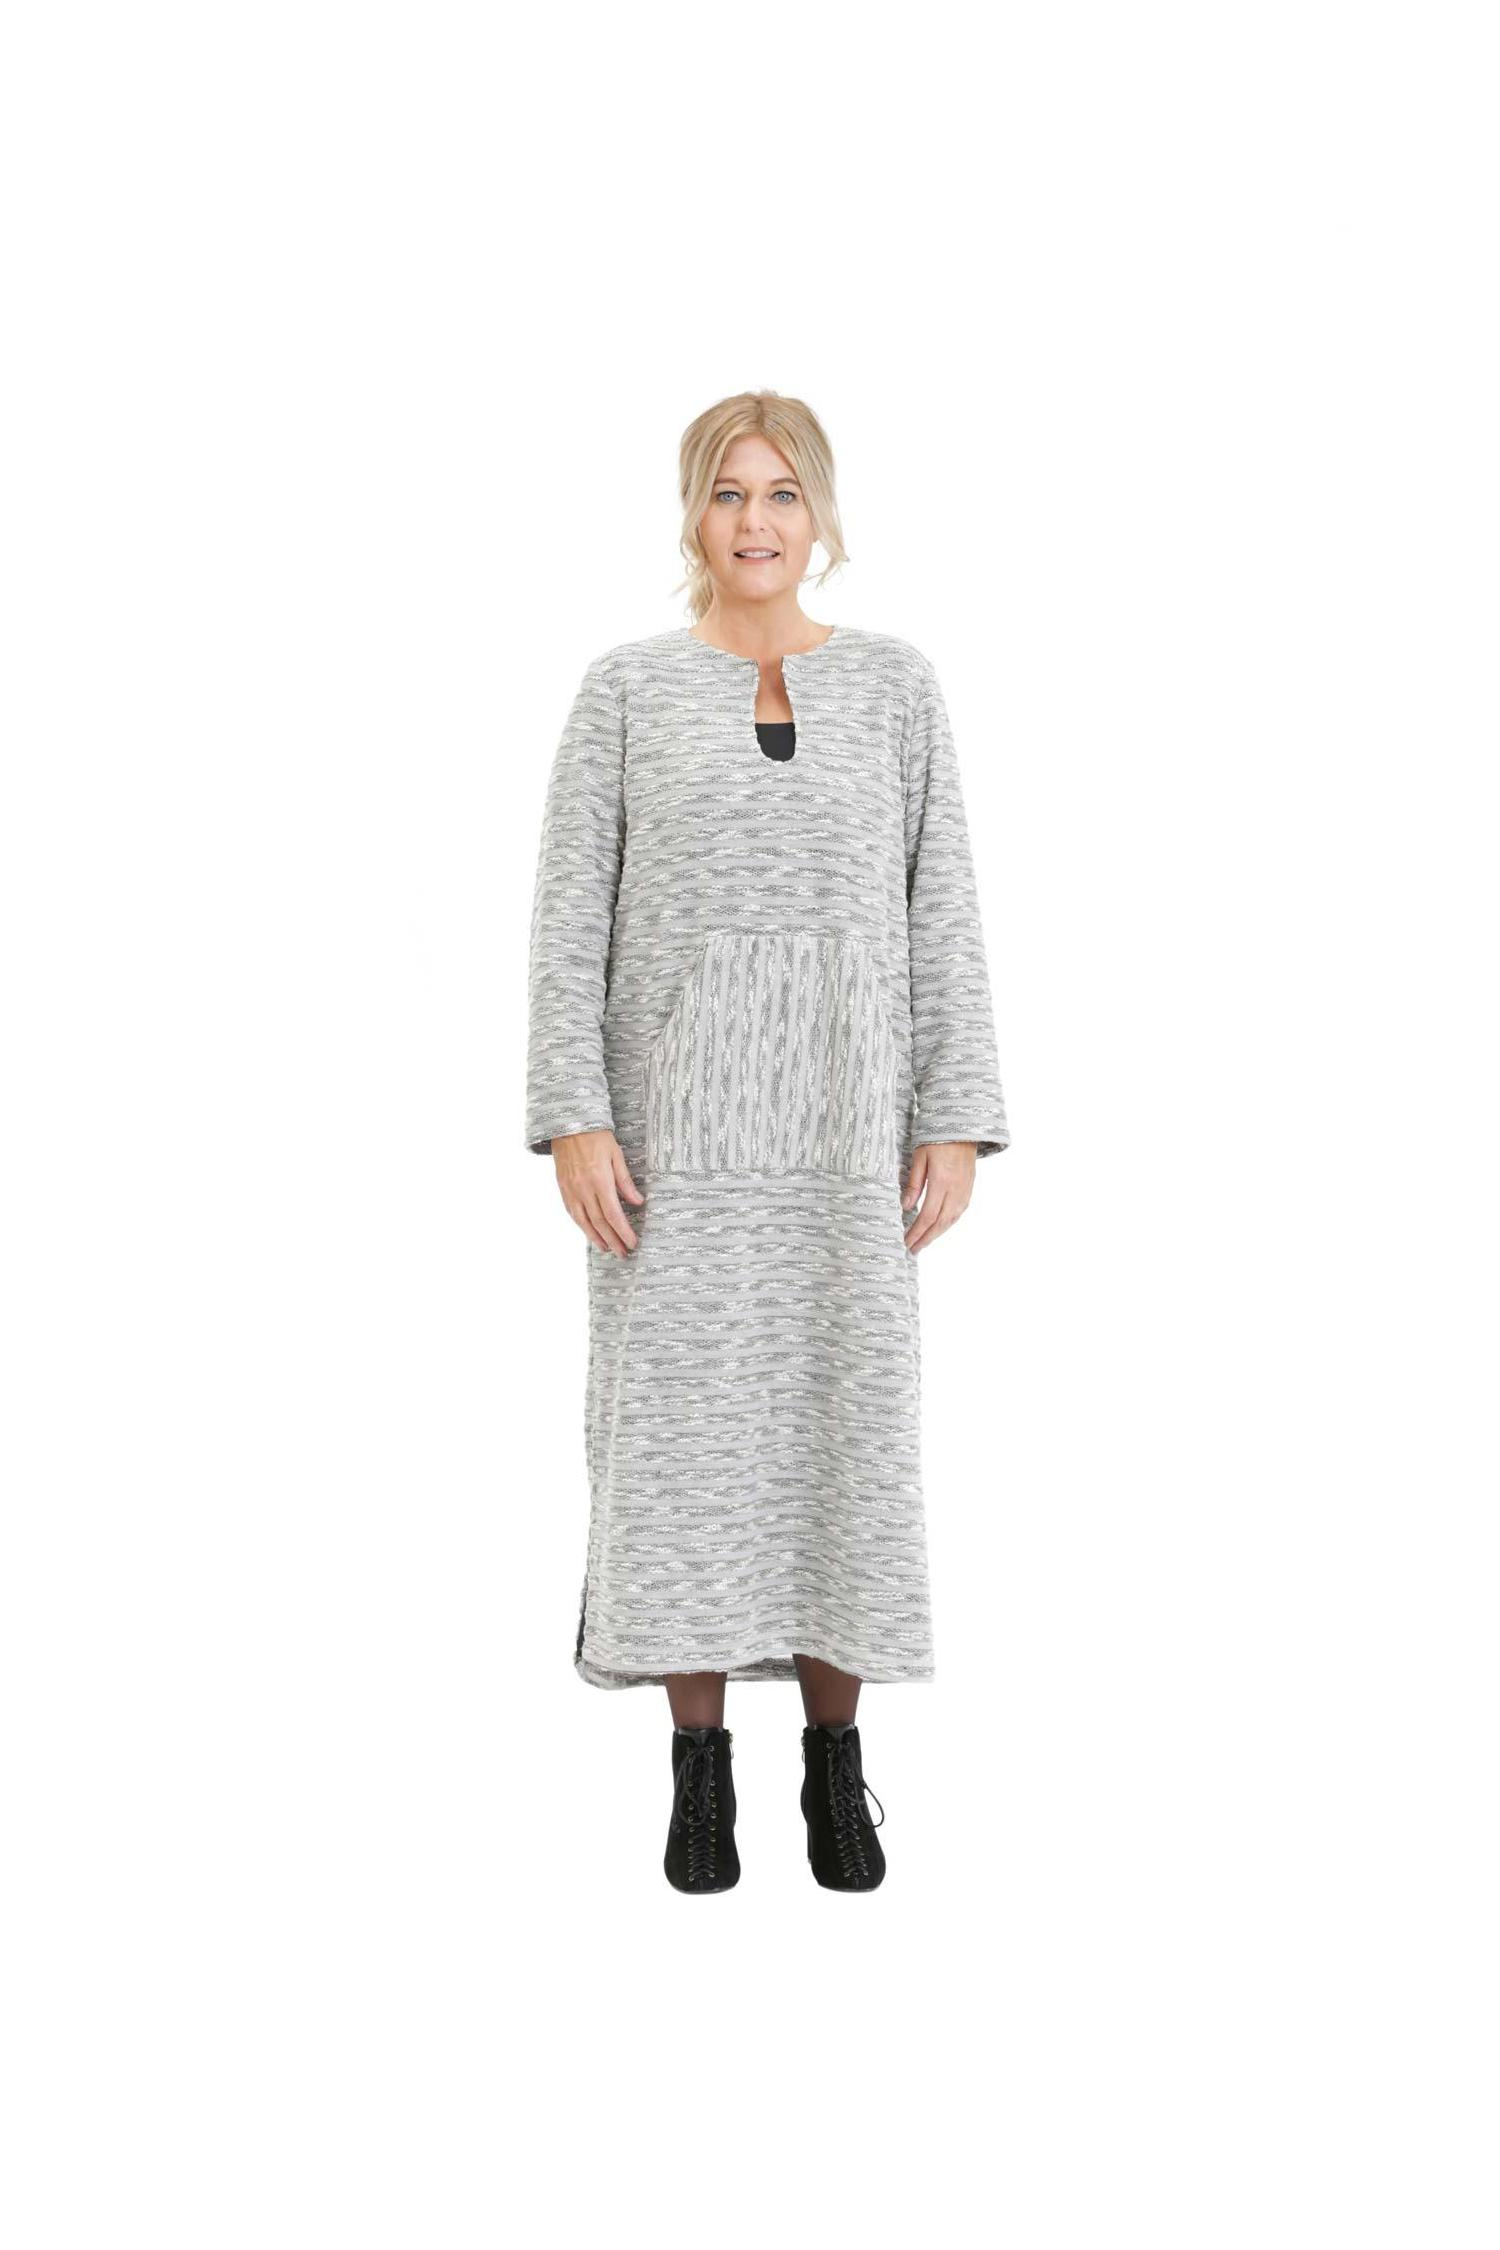 Knit dress with front pouch